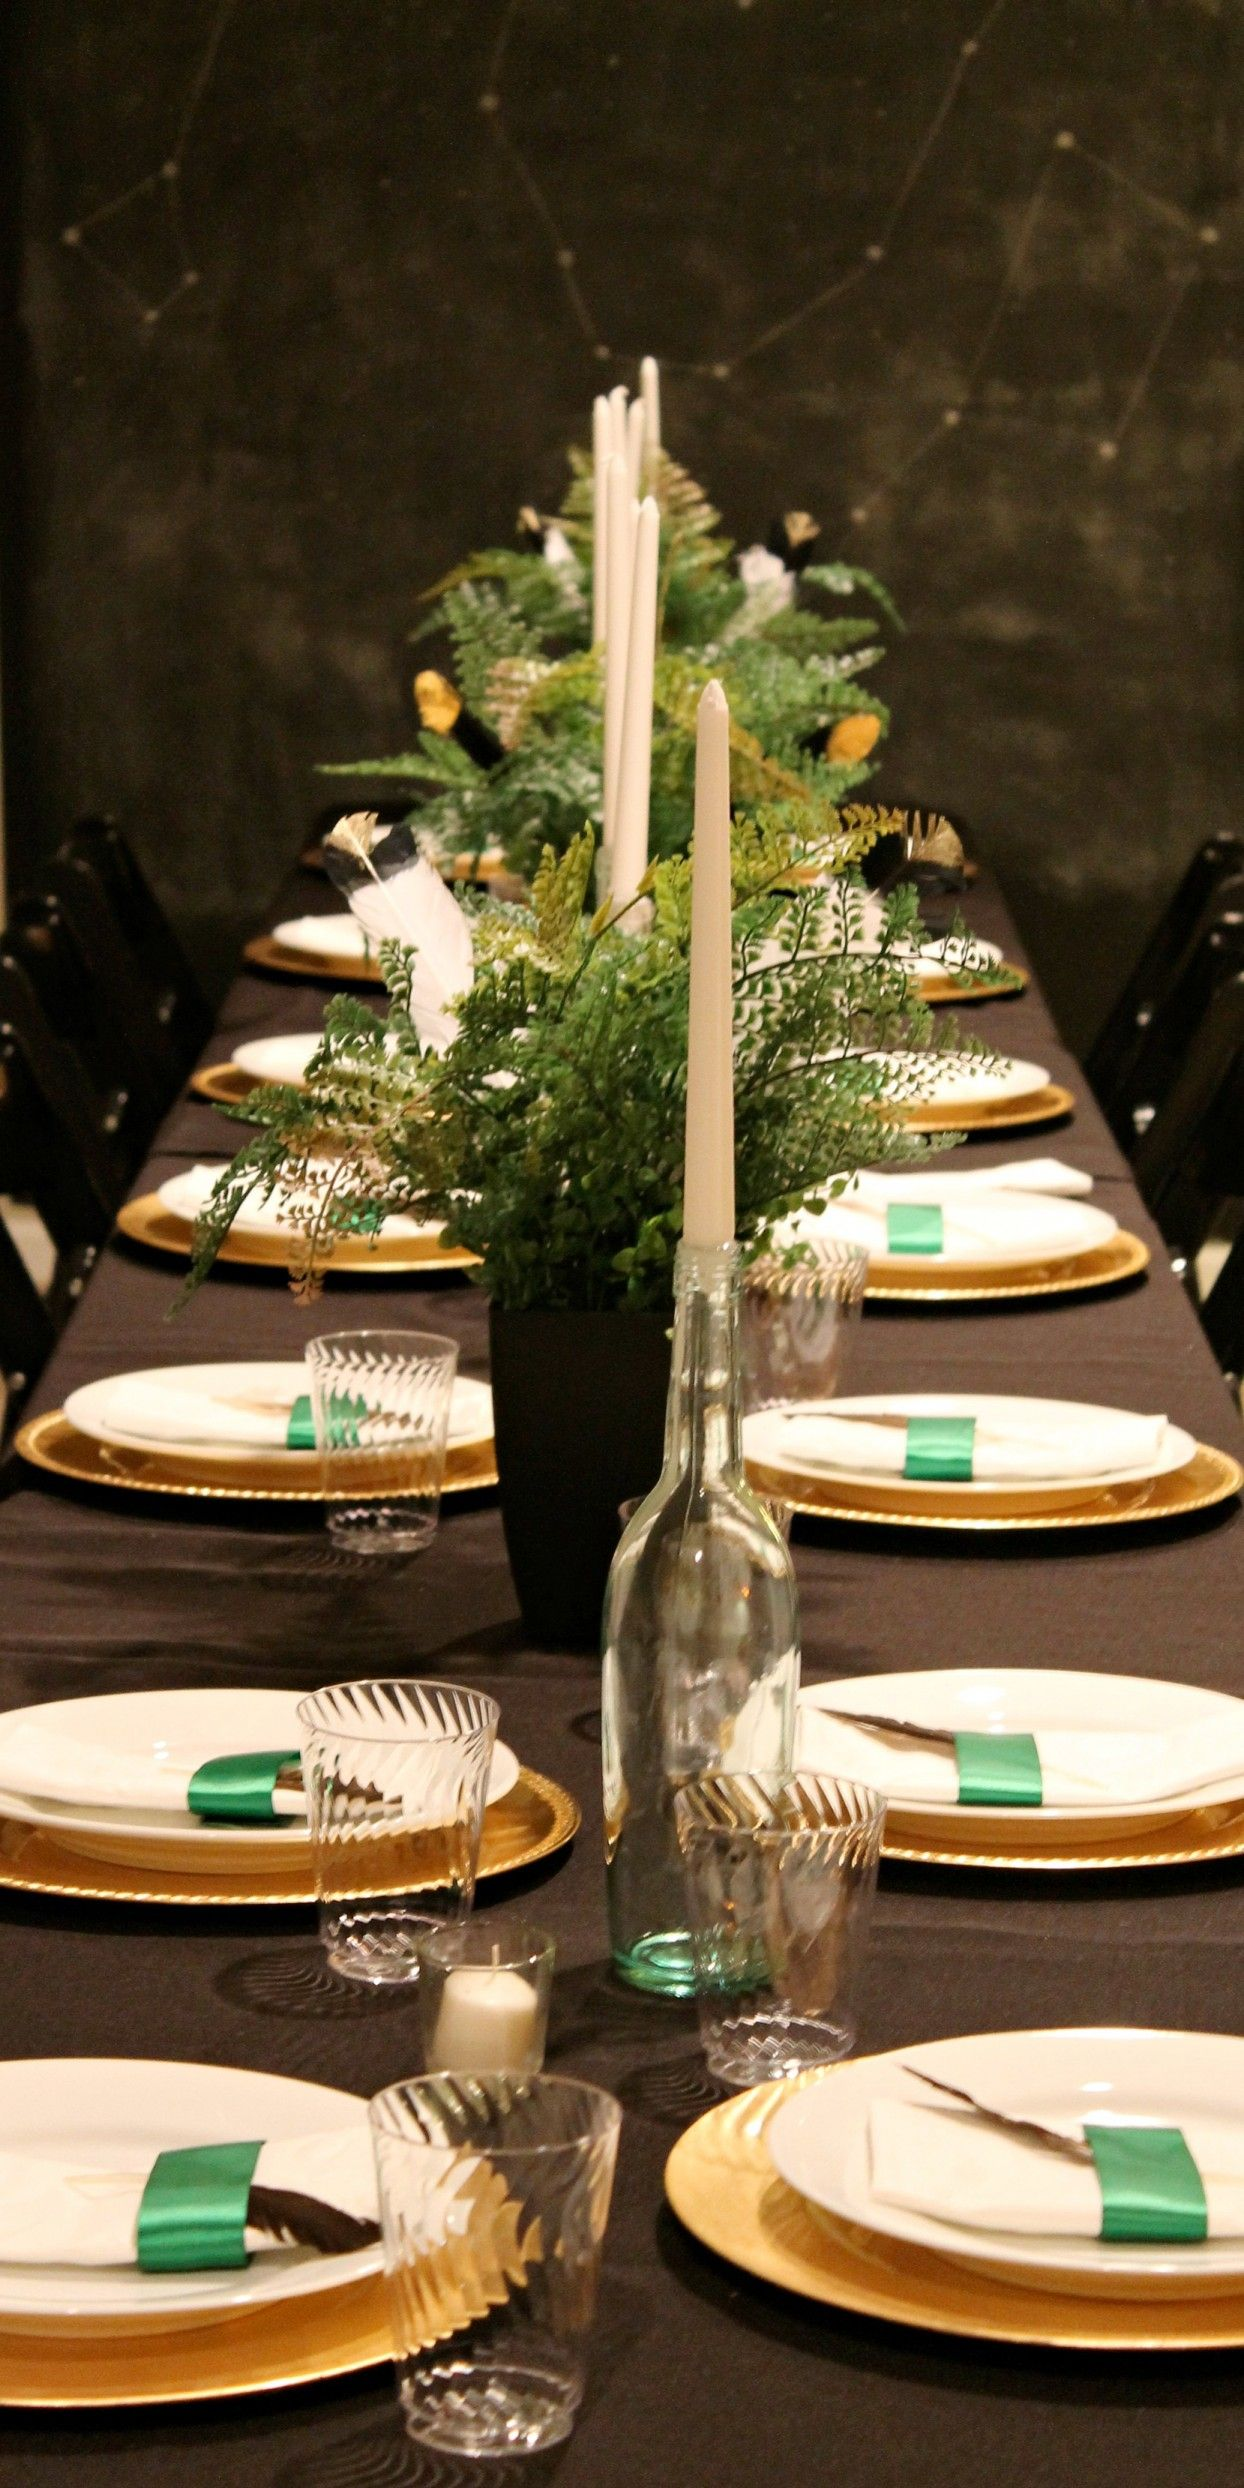 Table Decorating Ideas For Dinner Parties Part - 23: Holiday Dinner Table Ideas Christmas Decoration Excerpt How To Decorate  Dining For. Landscaping Design Ideas